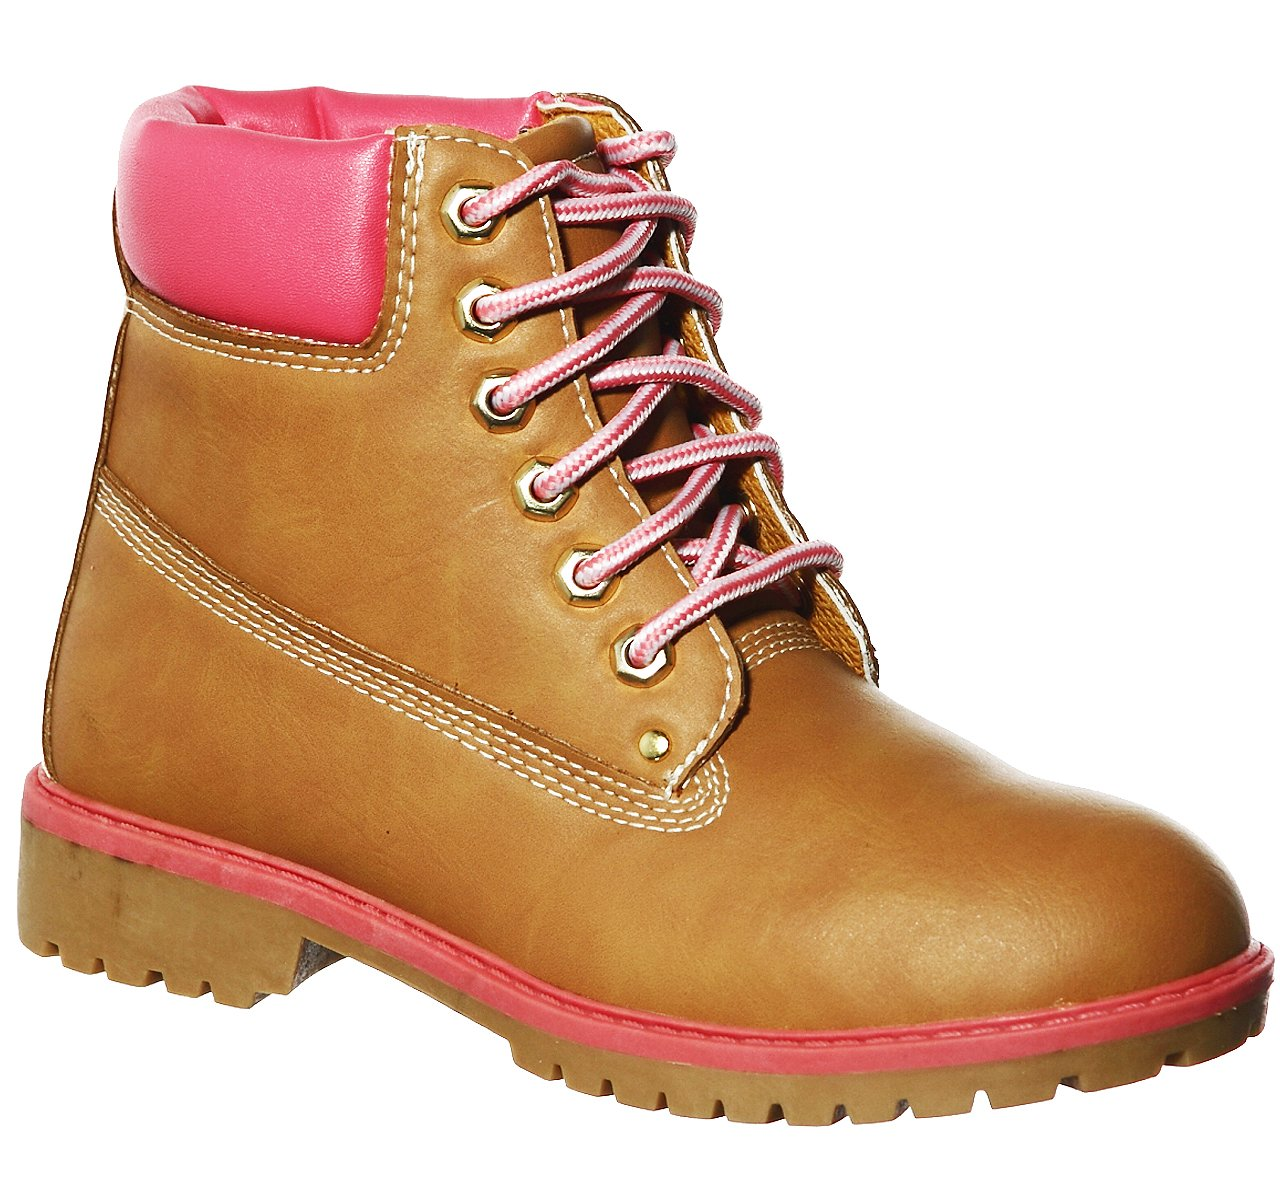 New!! Lace-up Quilted-Ankle/Fold-Over Lug Sole Ankle Boots Multiple Styles(7, Tan/Pink)[Apparel] by shoewhatever